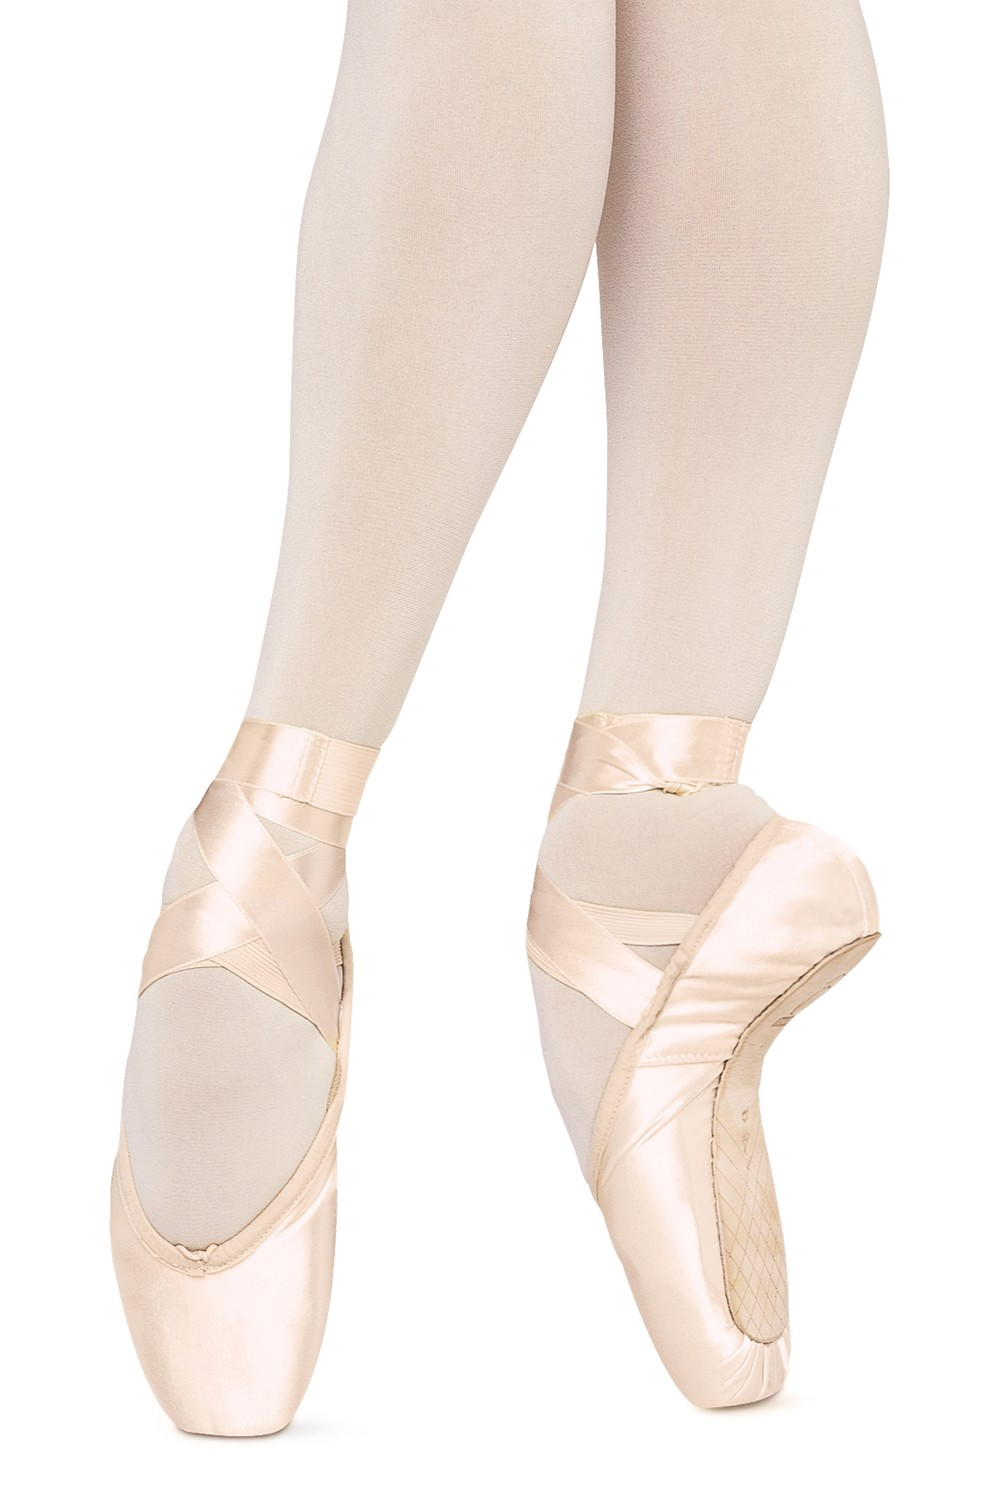 Suprima Mk Ii Pointe Shoes